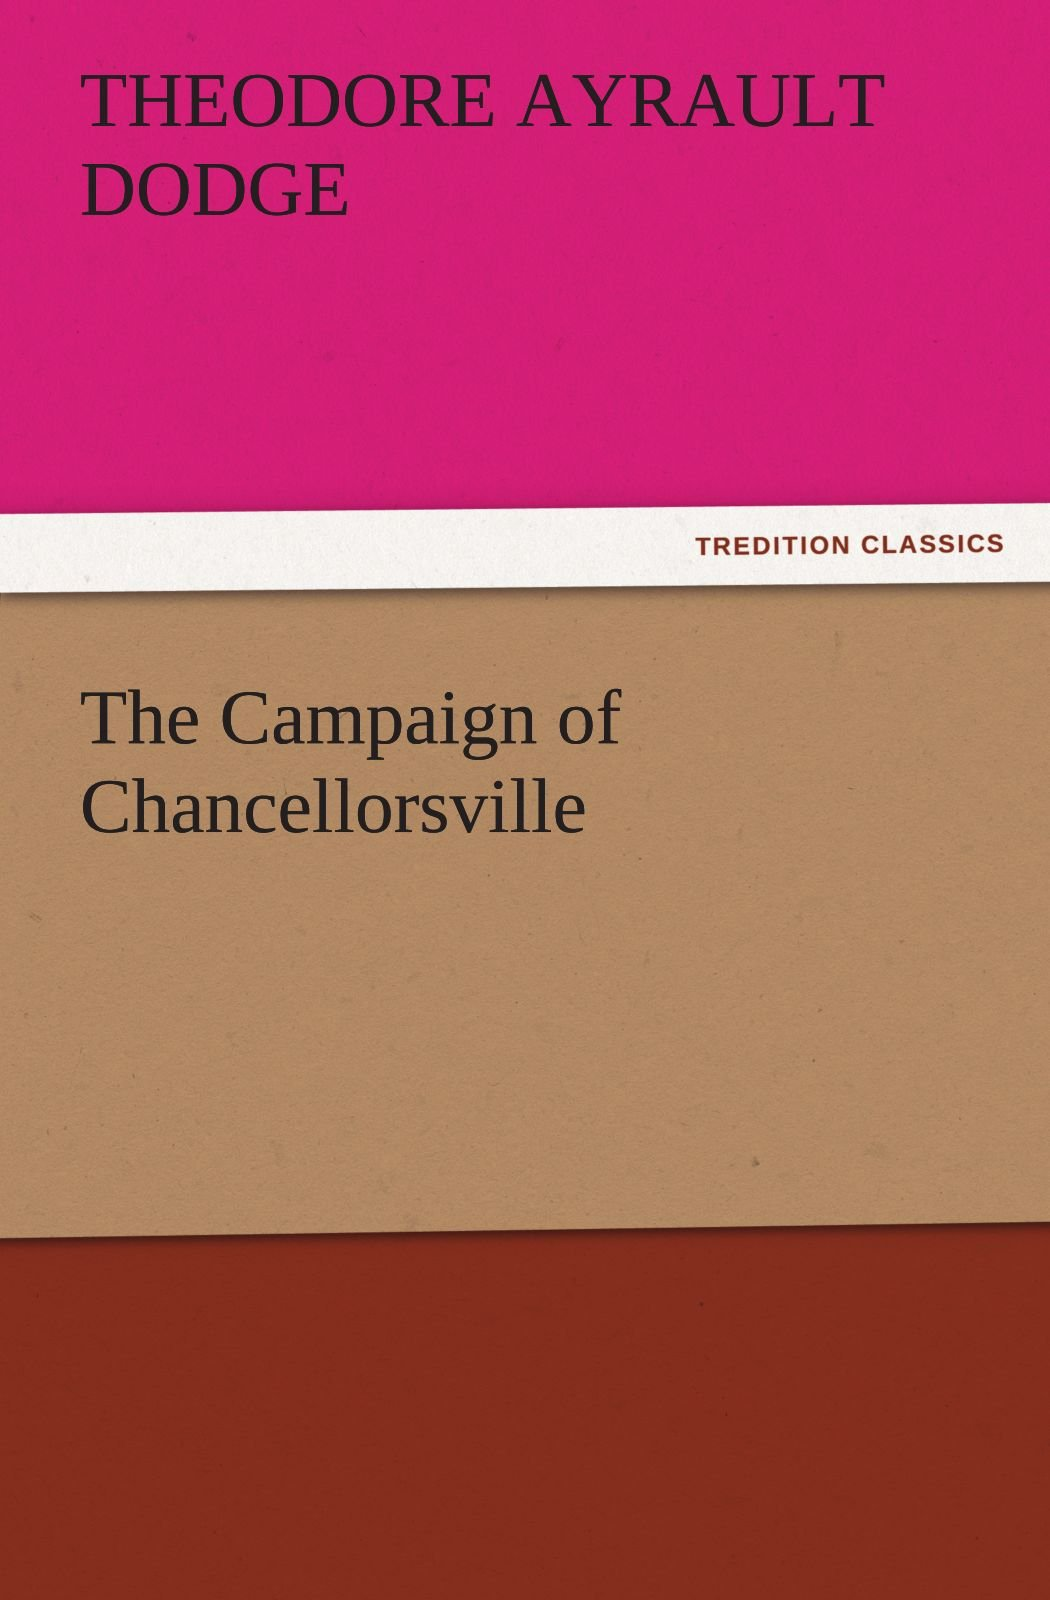 Download The Campaign of Chancellorsville (TREDITION CLASSICS) pdf